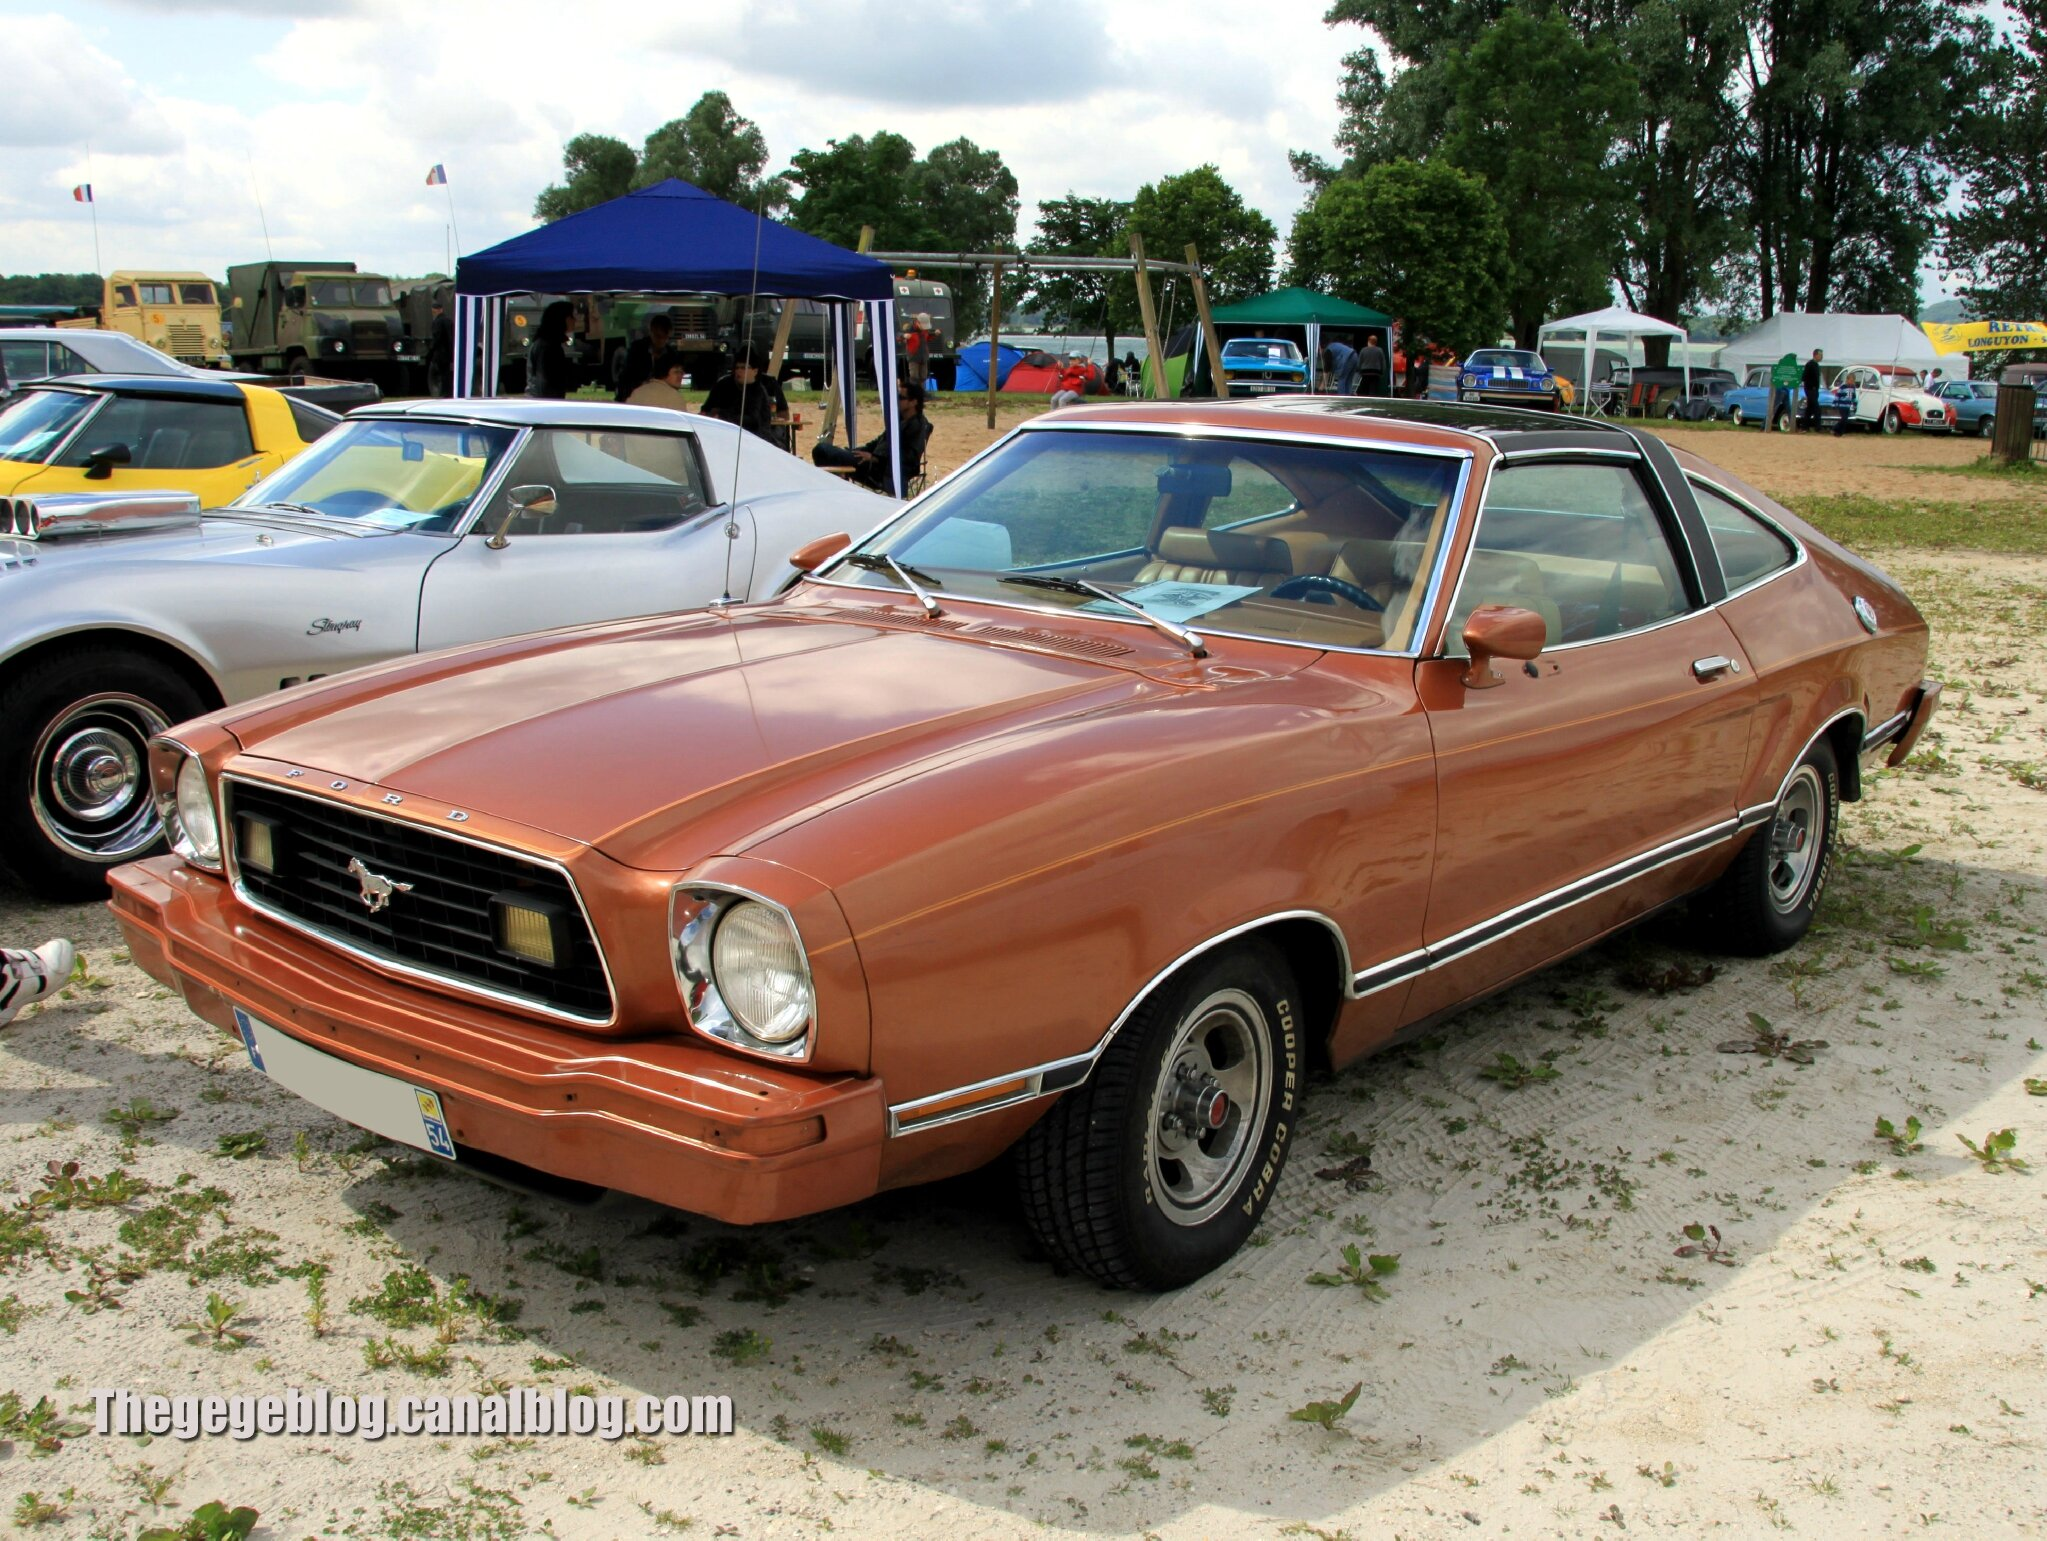 1978 Mustang 2+2 For Sale